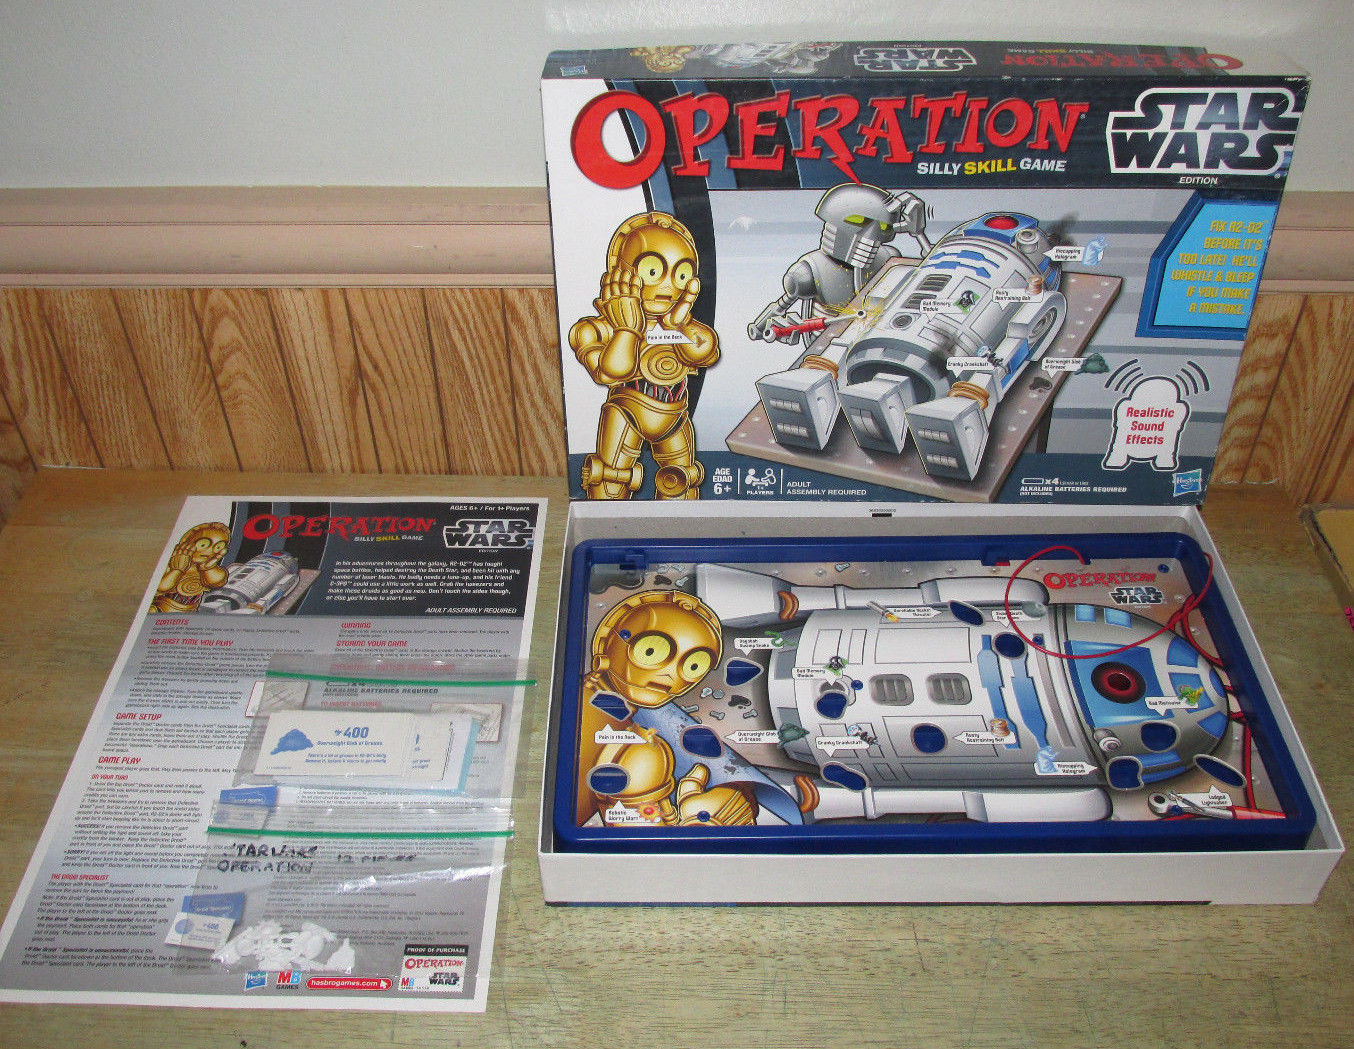 Primary image for Operation Game Star Wars Edition, Silly Skill Game, R2-D2 & CP3O Sounds, Hasbro